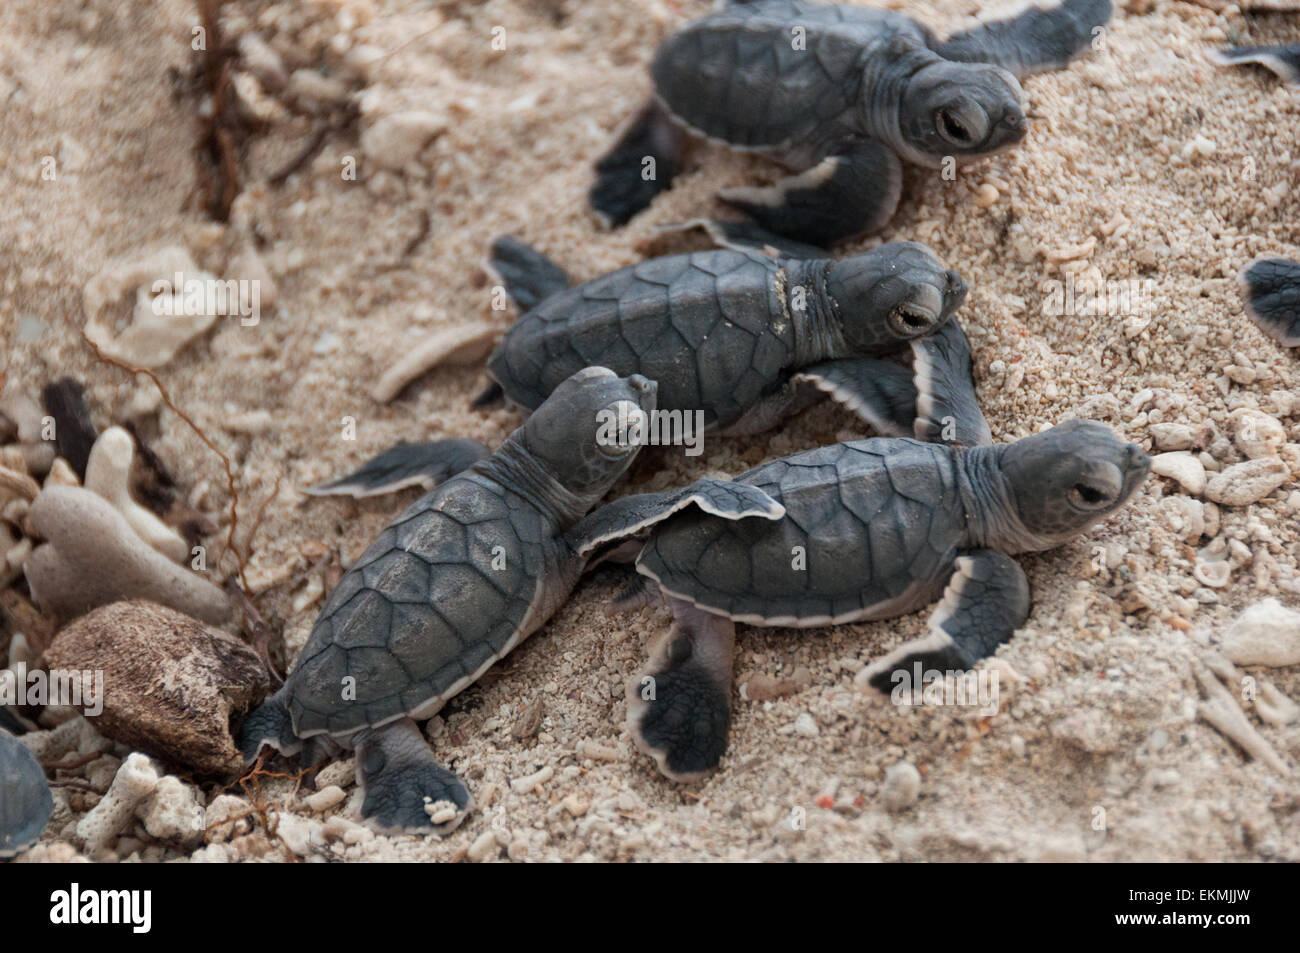 newbron-baby-green-turtles-crawling-out-of-their-sand-hole-turtle-EKMJJW.jpg